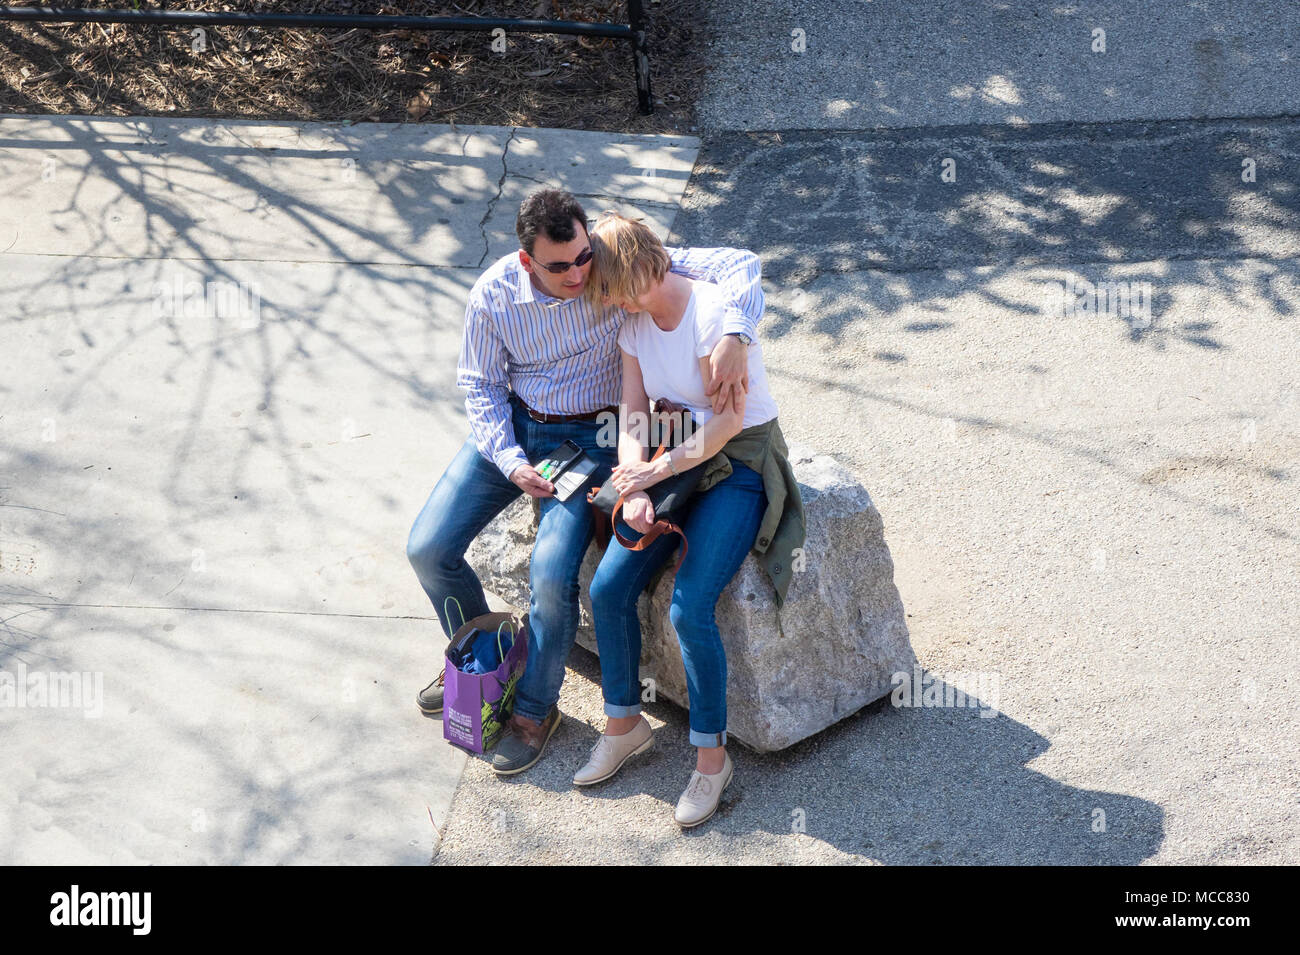 A tourist couple having a quiet and tender moment on a mild weather day in NYC - Stock Image